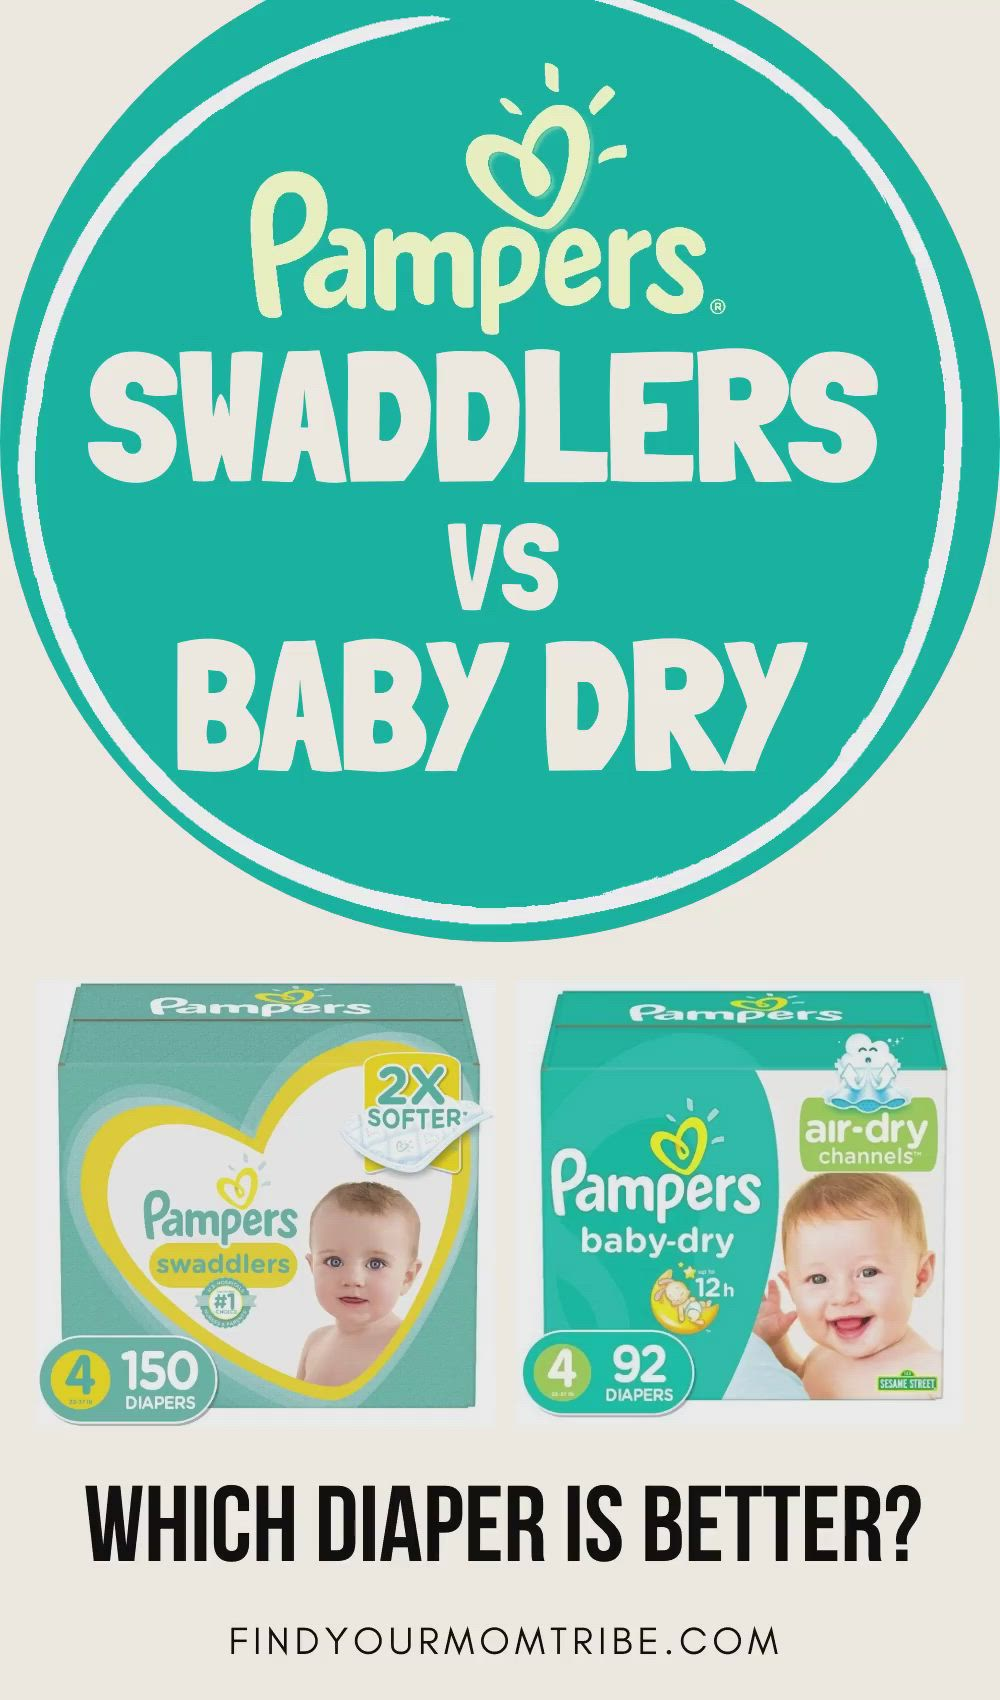 Swaddlers Vs Baby Dry : swaddlers, Pampers, Swaddlers, Diapers:, Which, Better?, [Video], Swaddlers,, Pampers,